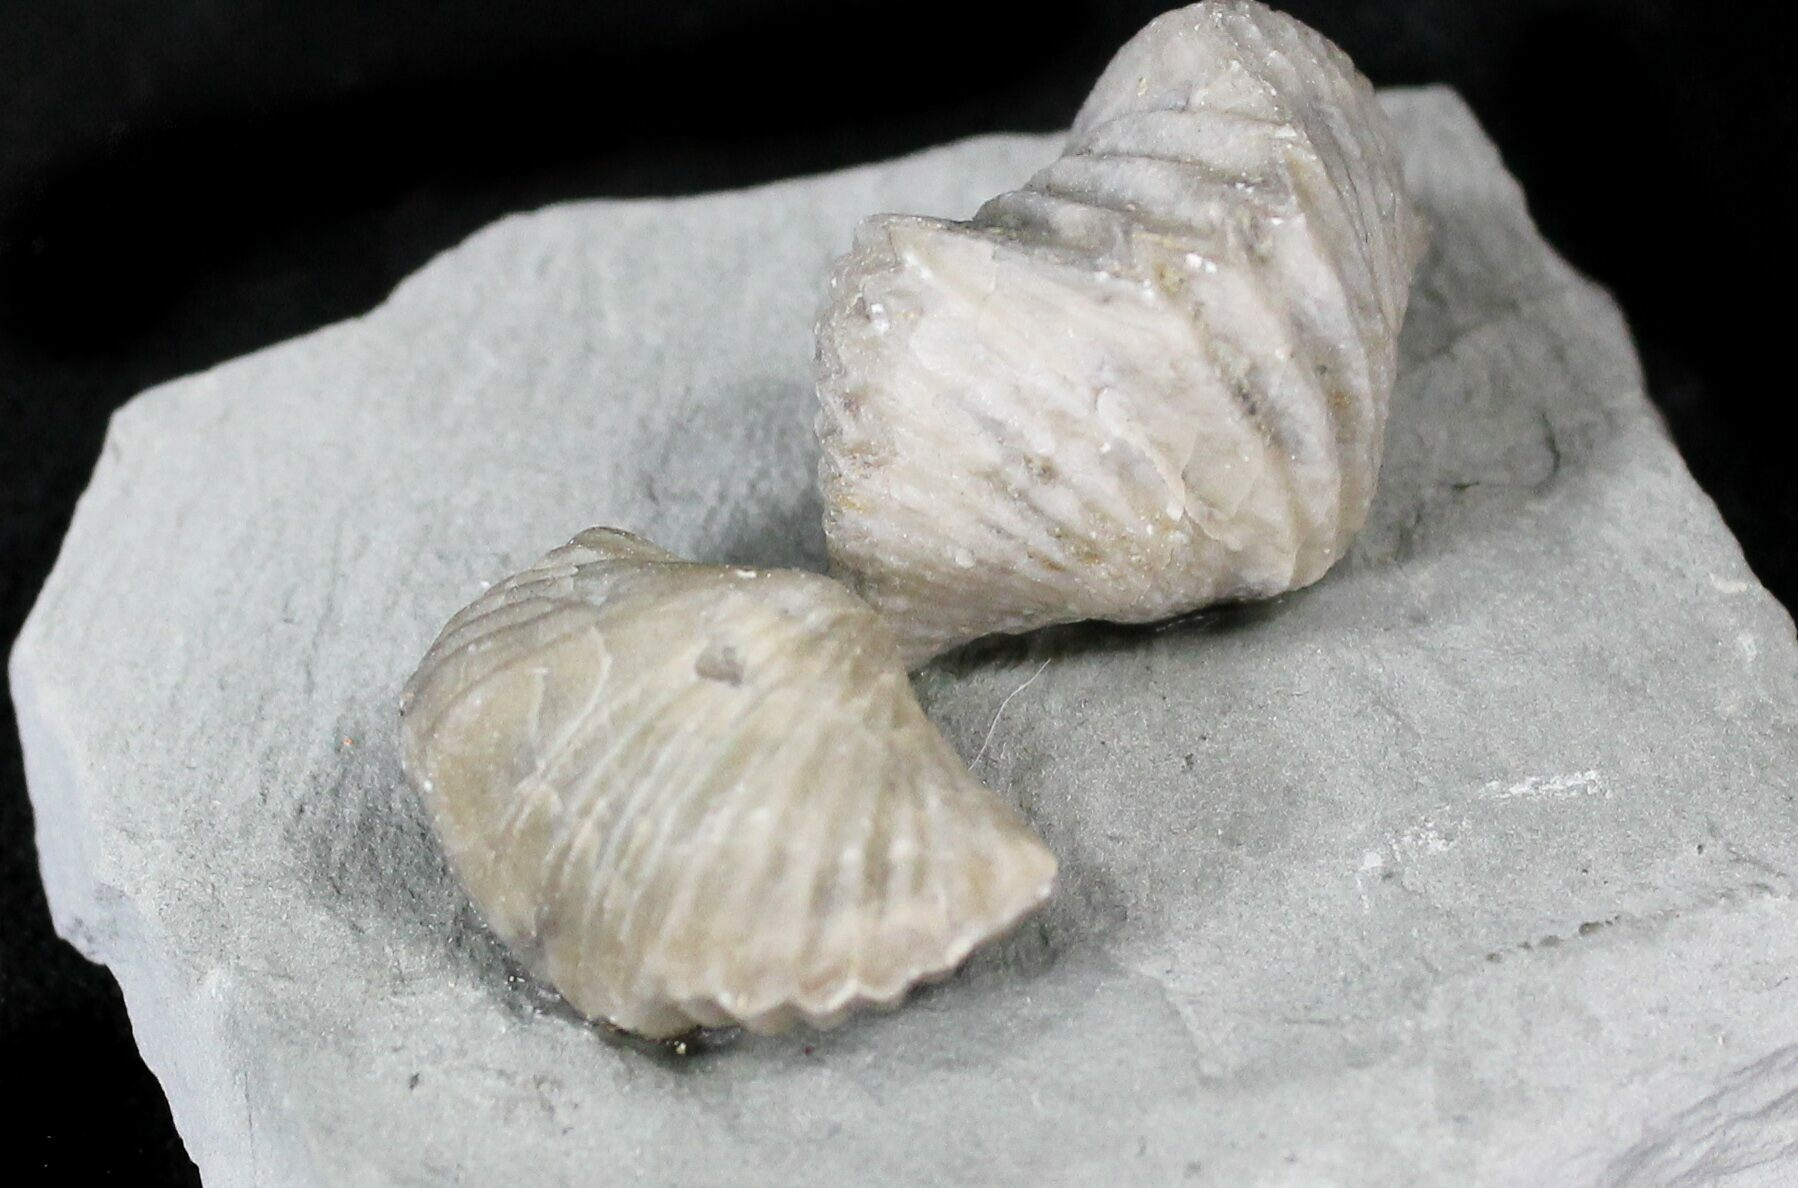 Pair Of Fossil Brachiopods (Platystrophia) - Indiana For